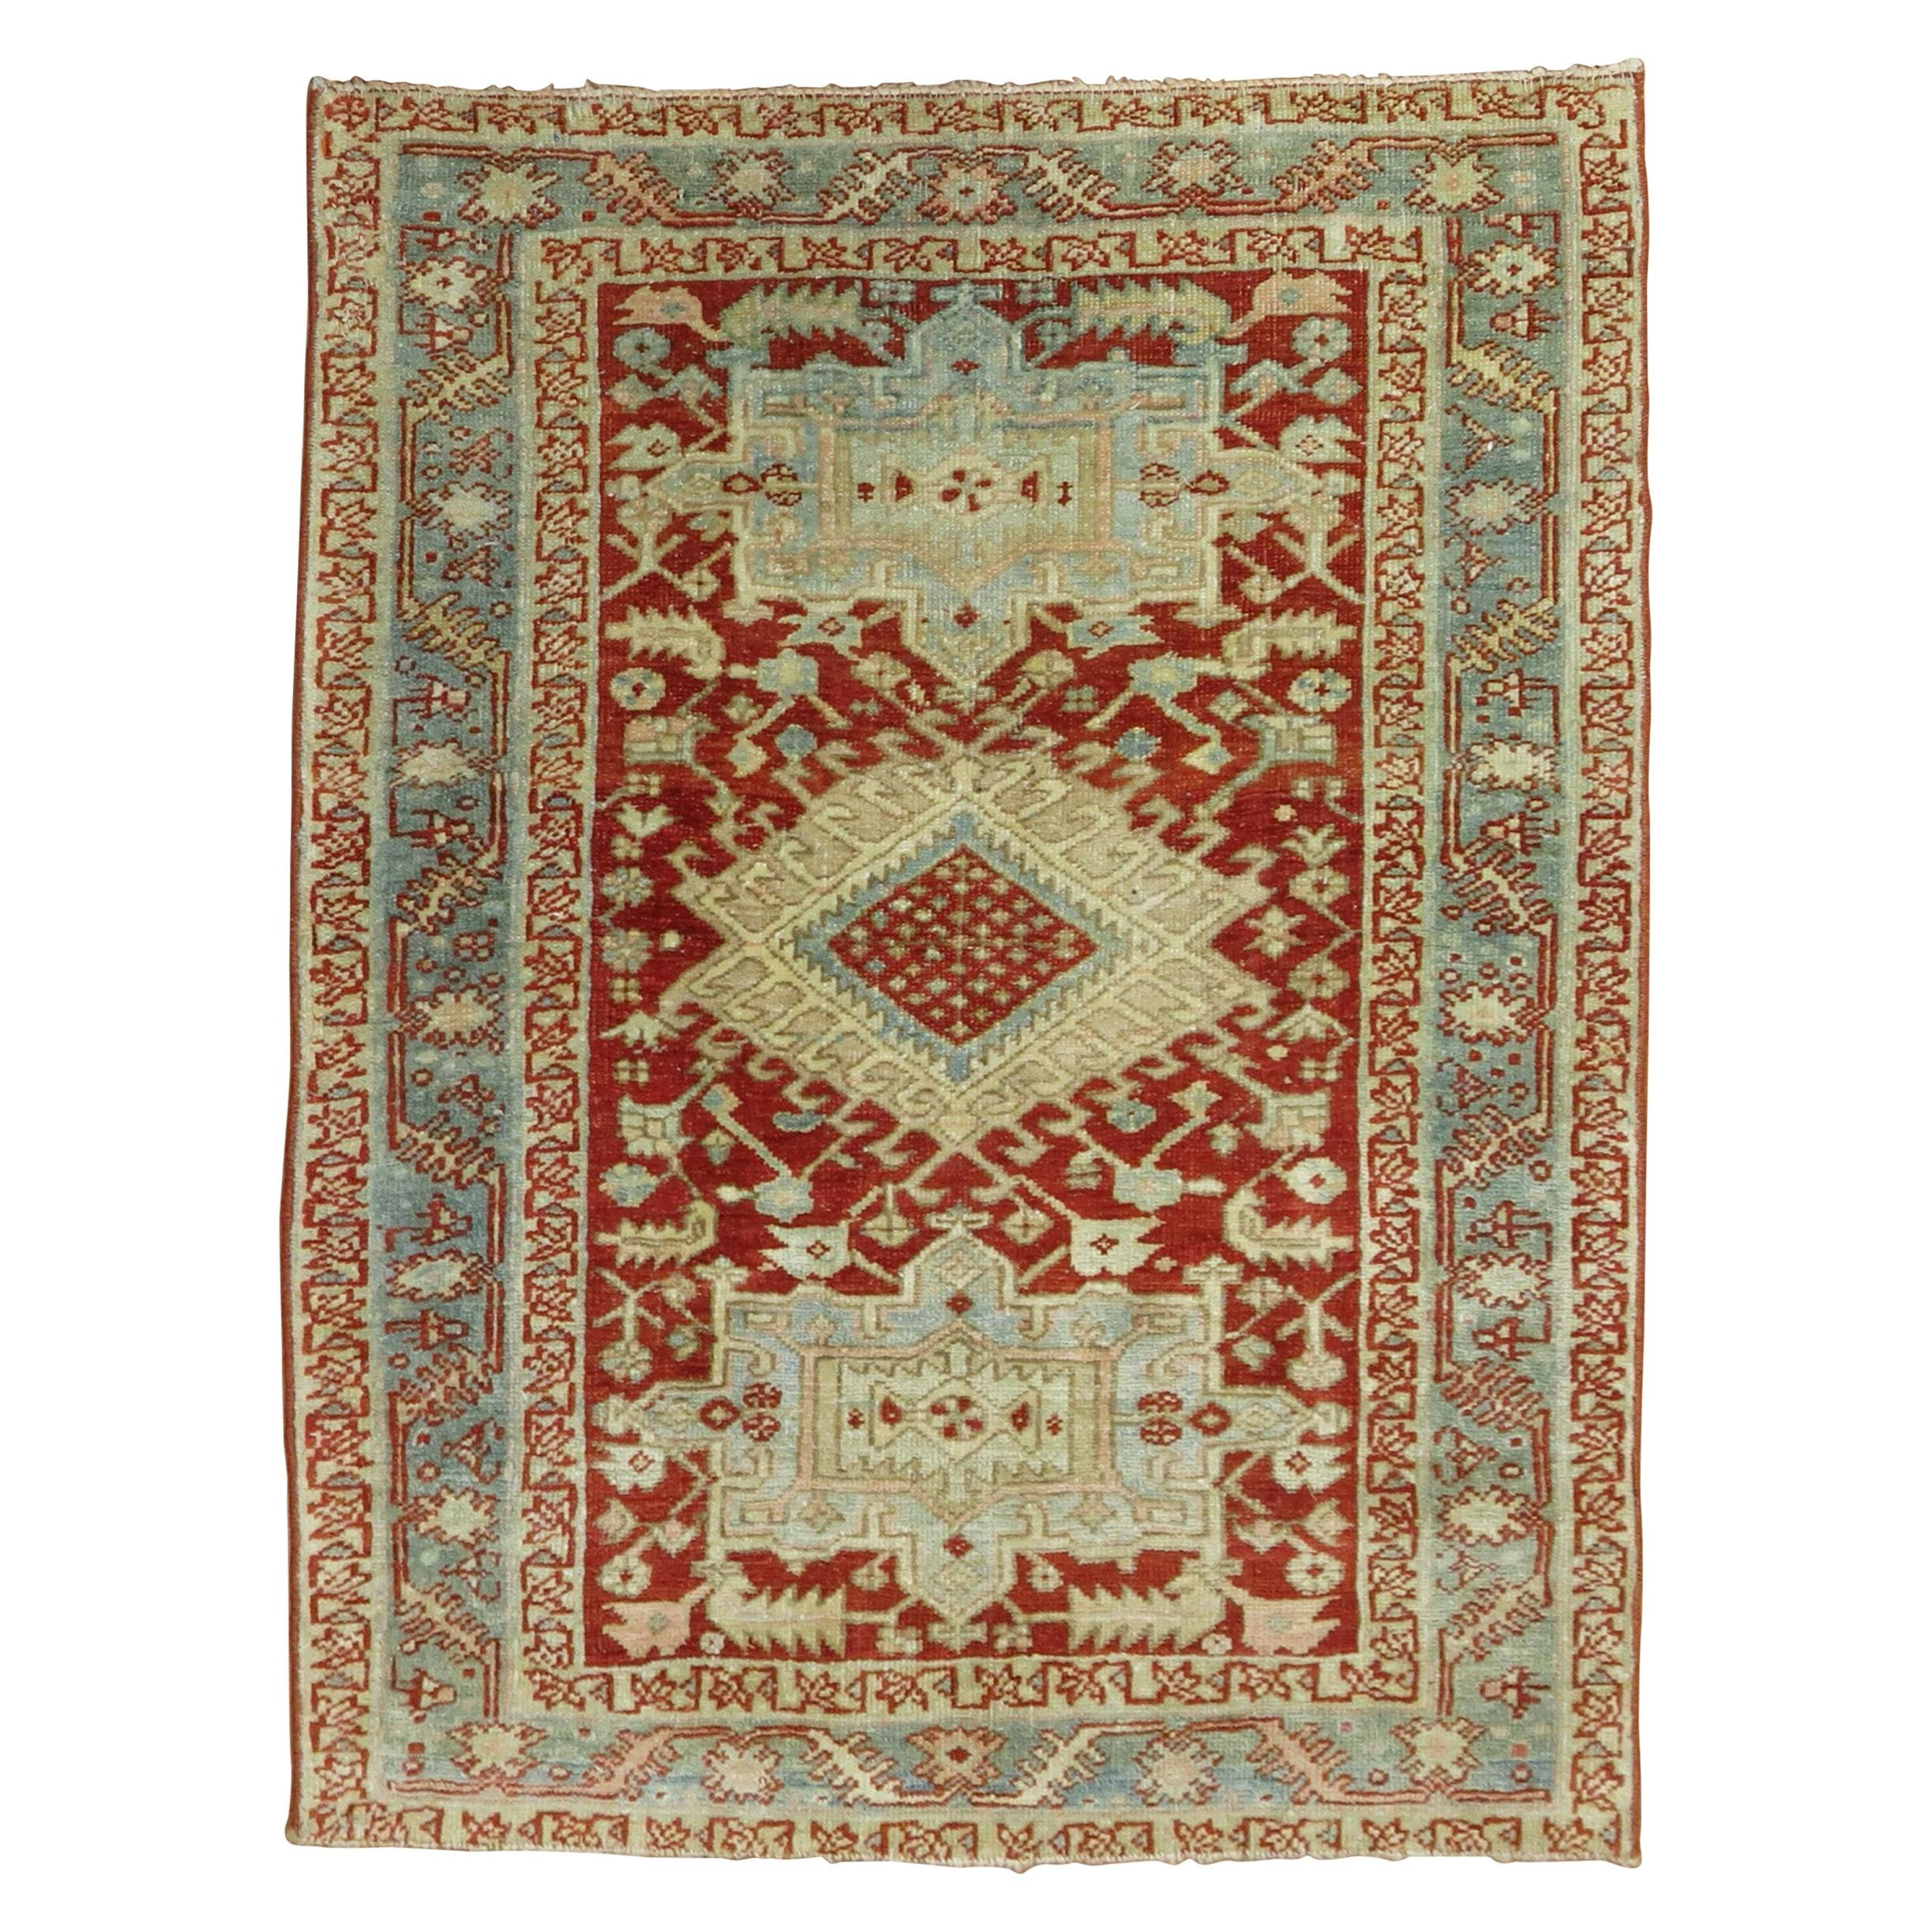 Cranberry Icy Blue Square Size Antique Persian Heriz Scatter Wool Handwoven Rug